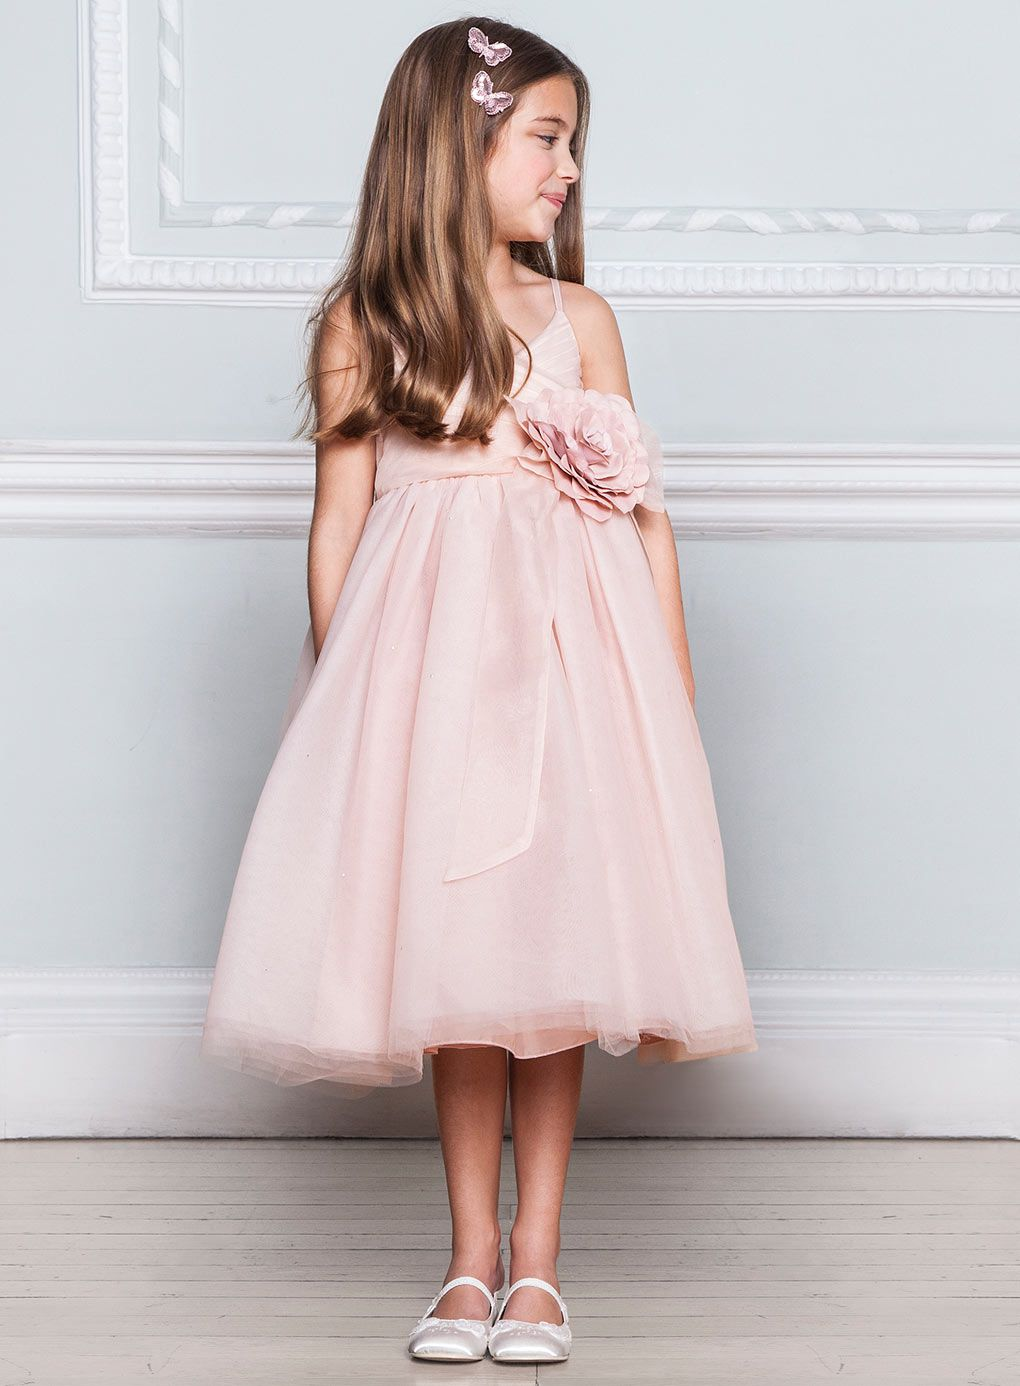 Lydia blush bridesmaid dress young bridesmaids wedding bhs lydia blush bridesmaid dress young bridesmaids wedding bhs ombrellifo Image collections